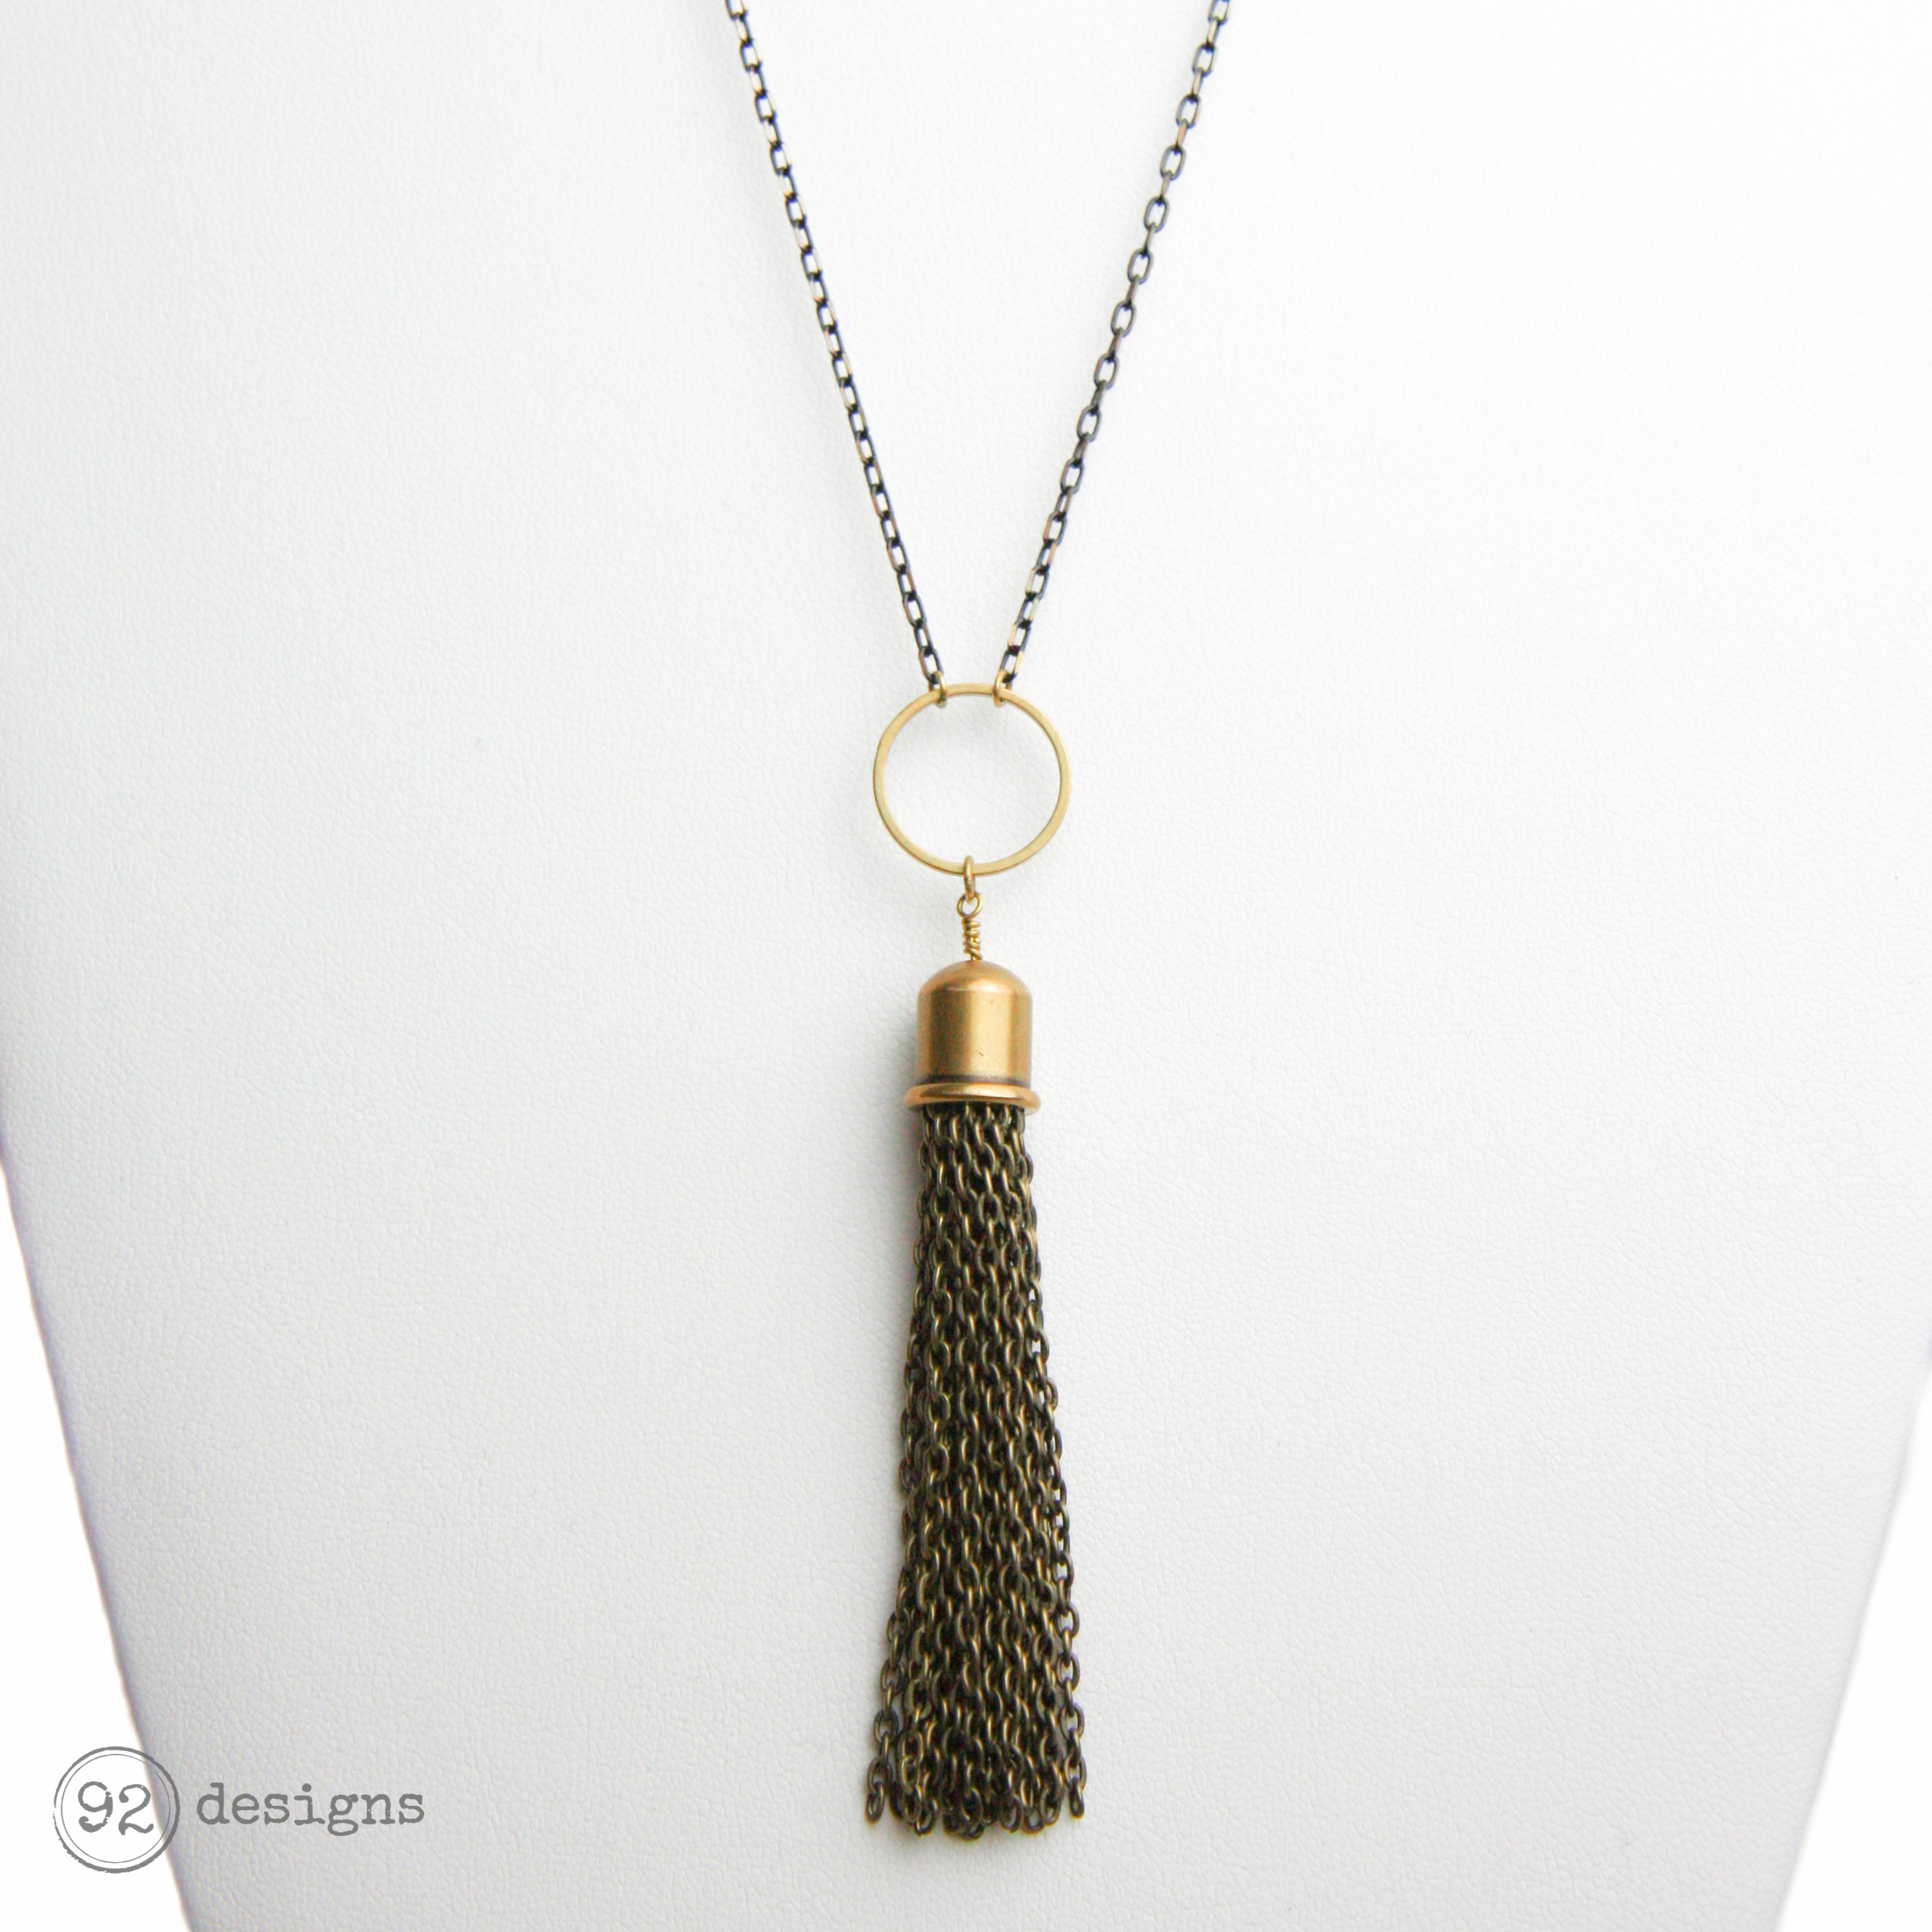 necklaces prasiolite green amethyst product silver wood necklace jewellery kate oxidised tassel in diamond by